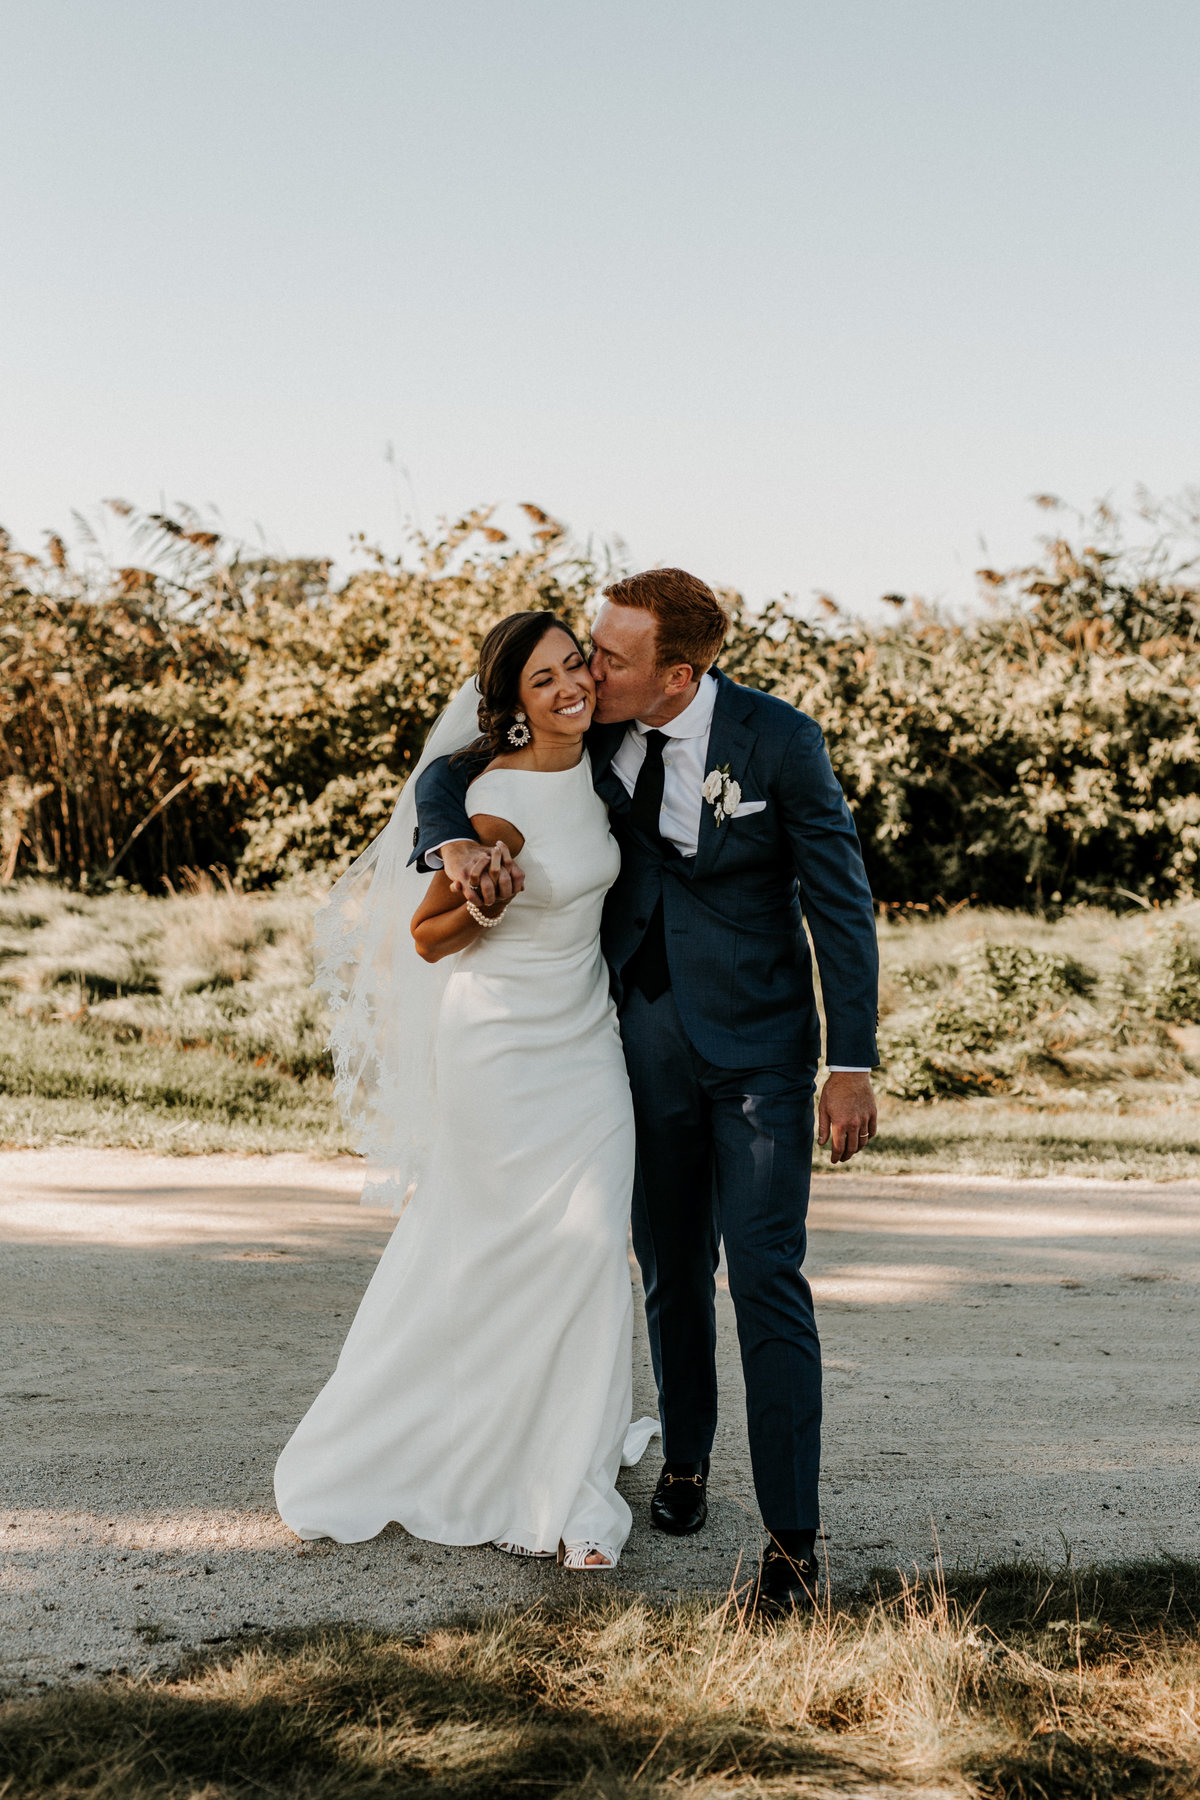 Ashley_Mike_Wedding_Sneak_Peek_9.15.18-8